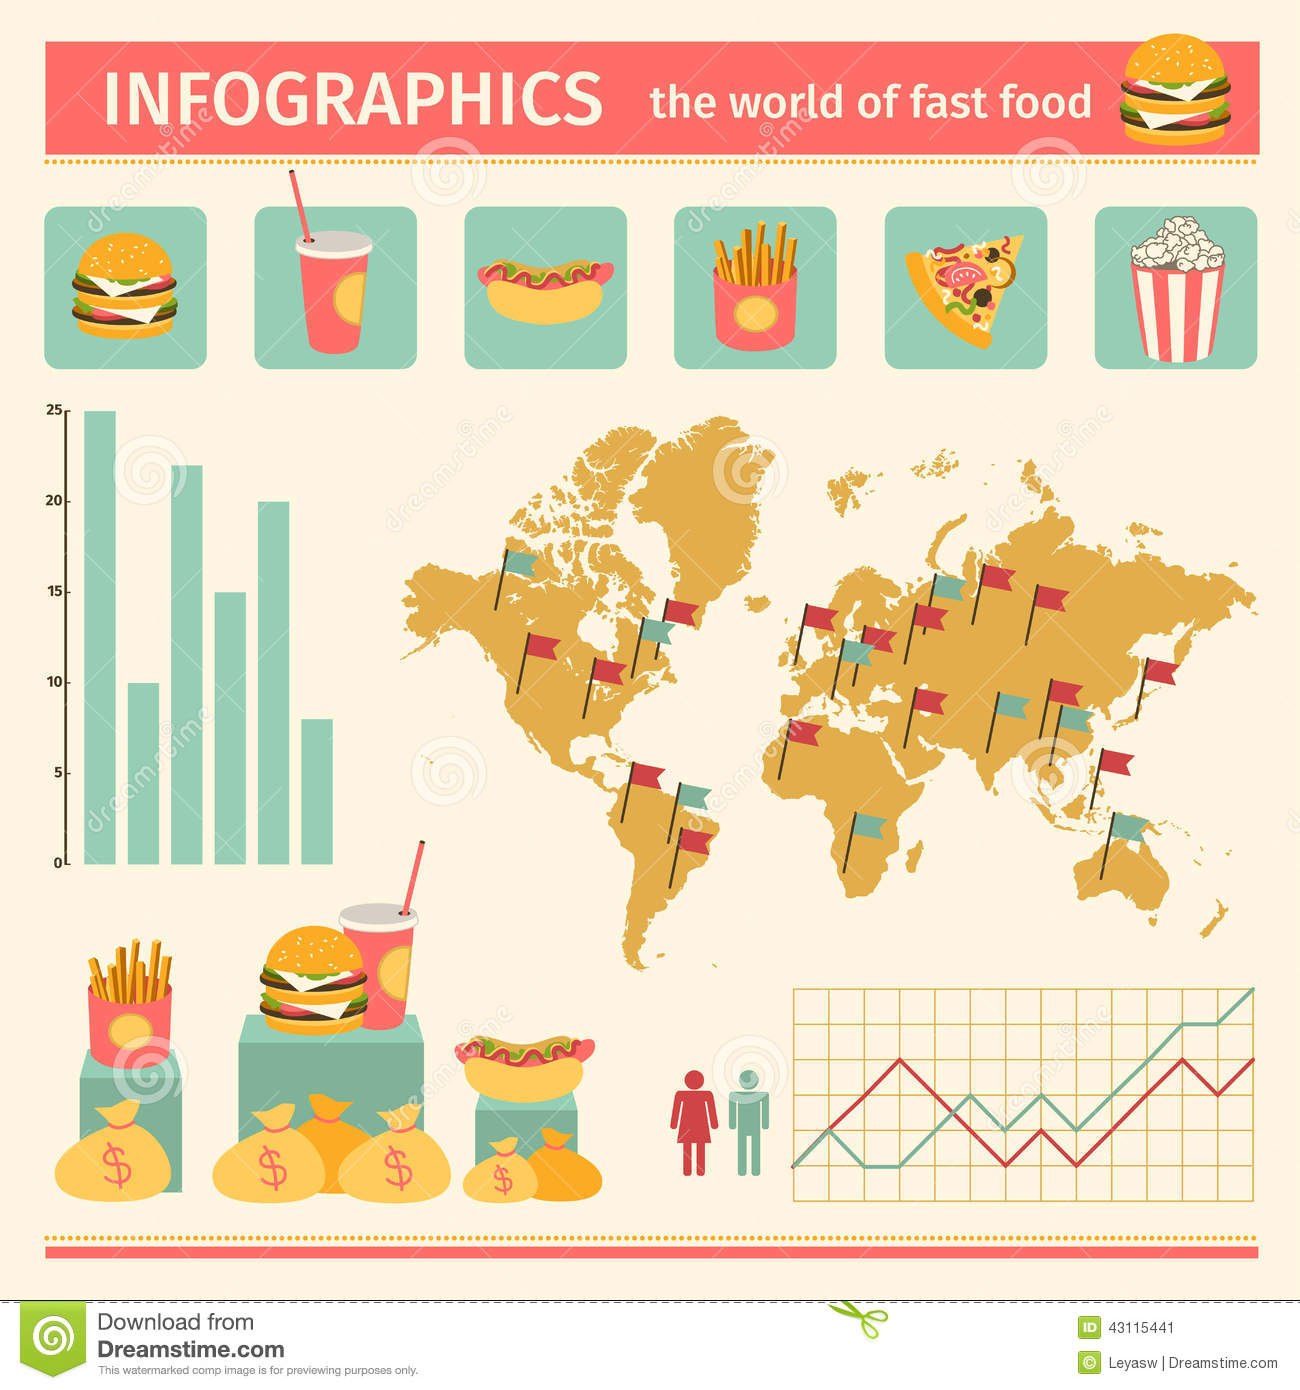 spatial diagram of fast food craftsman lawn tractor parts infographic consumption around the world